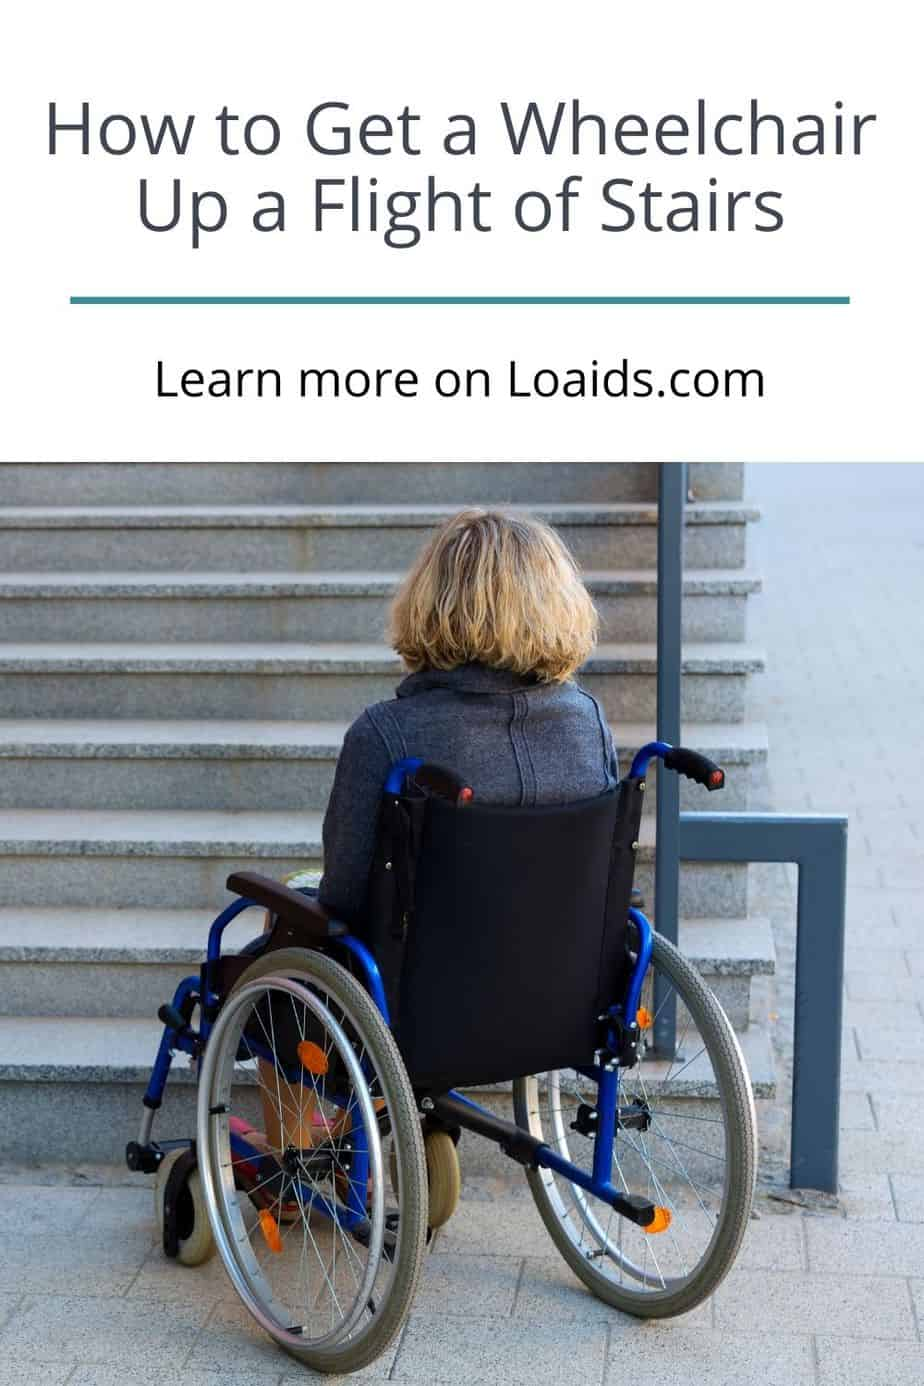 a lady thinking how to get a wheelchair up a flight of stairs